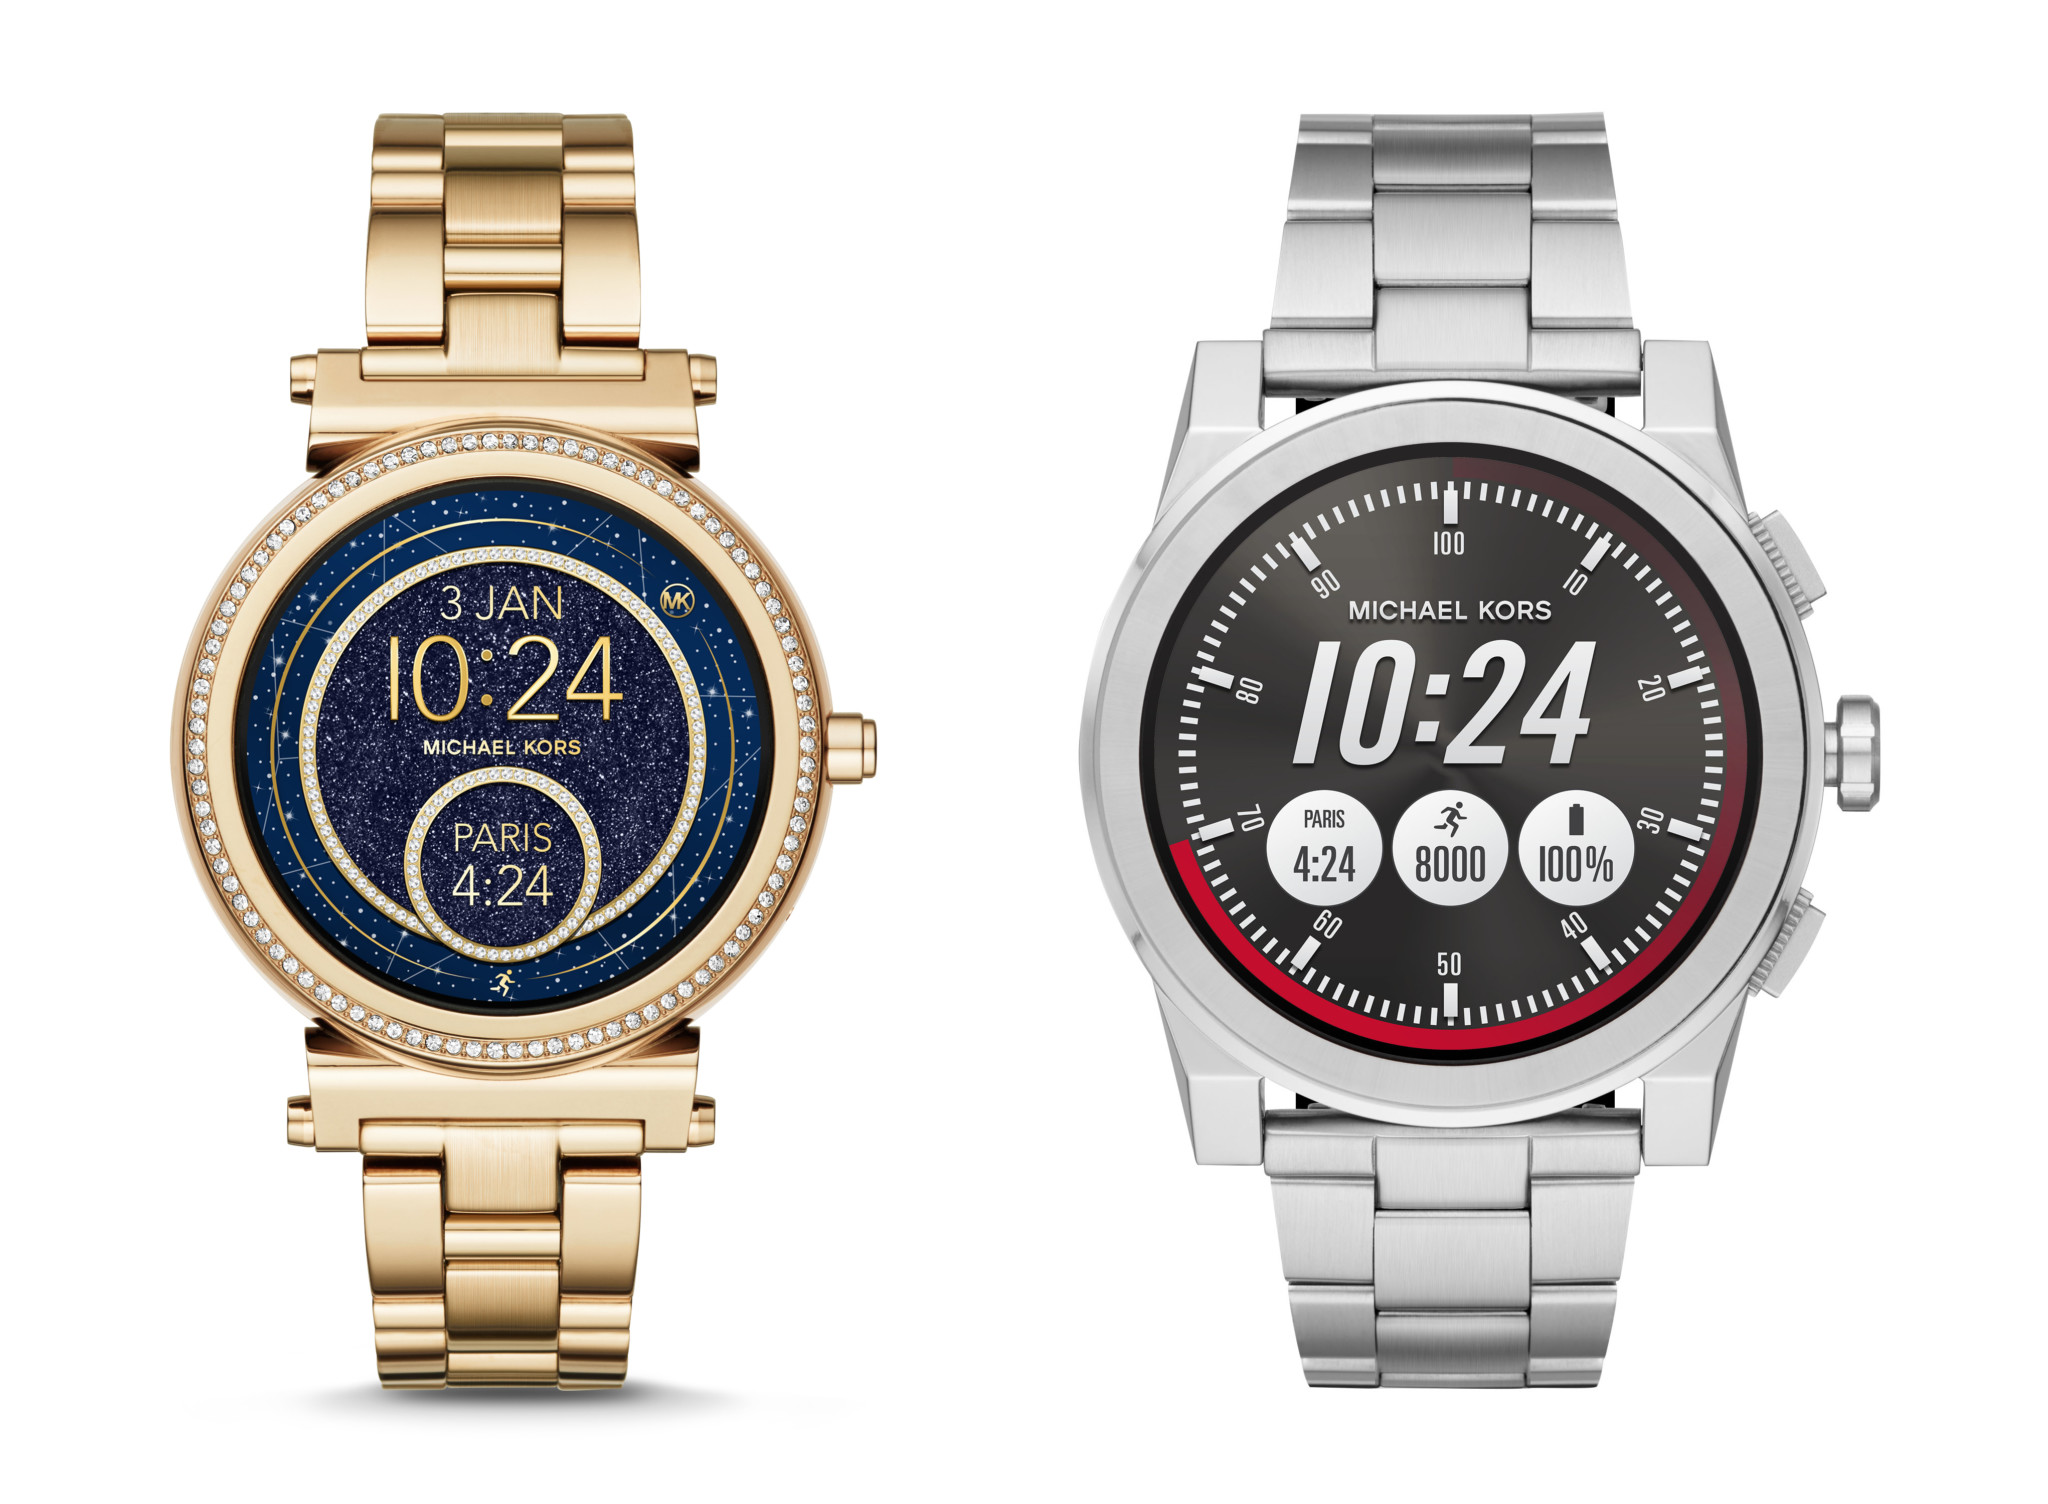 Michael Kors Sophie and Grayson smartwatches.